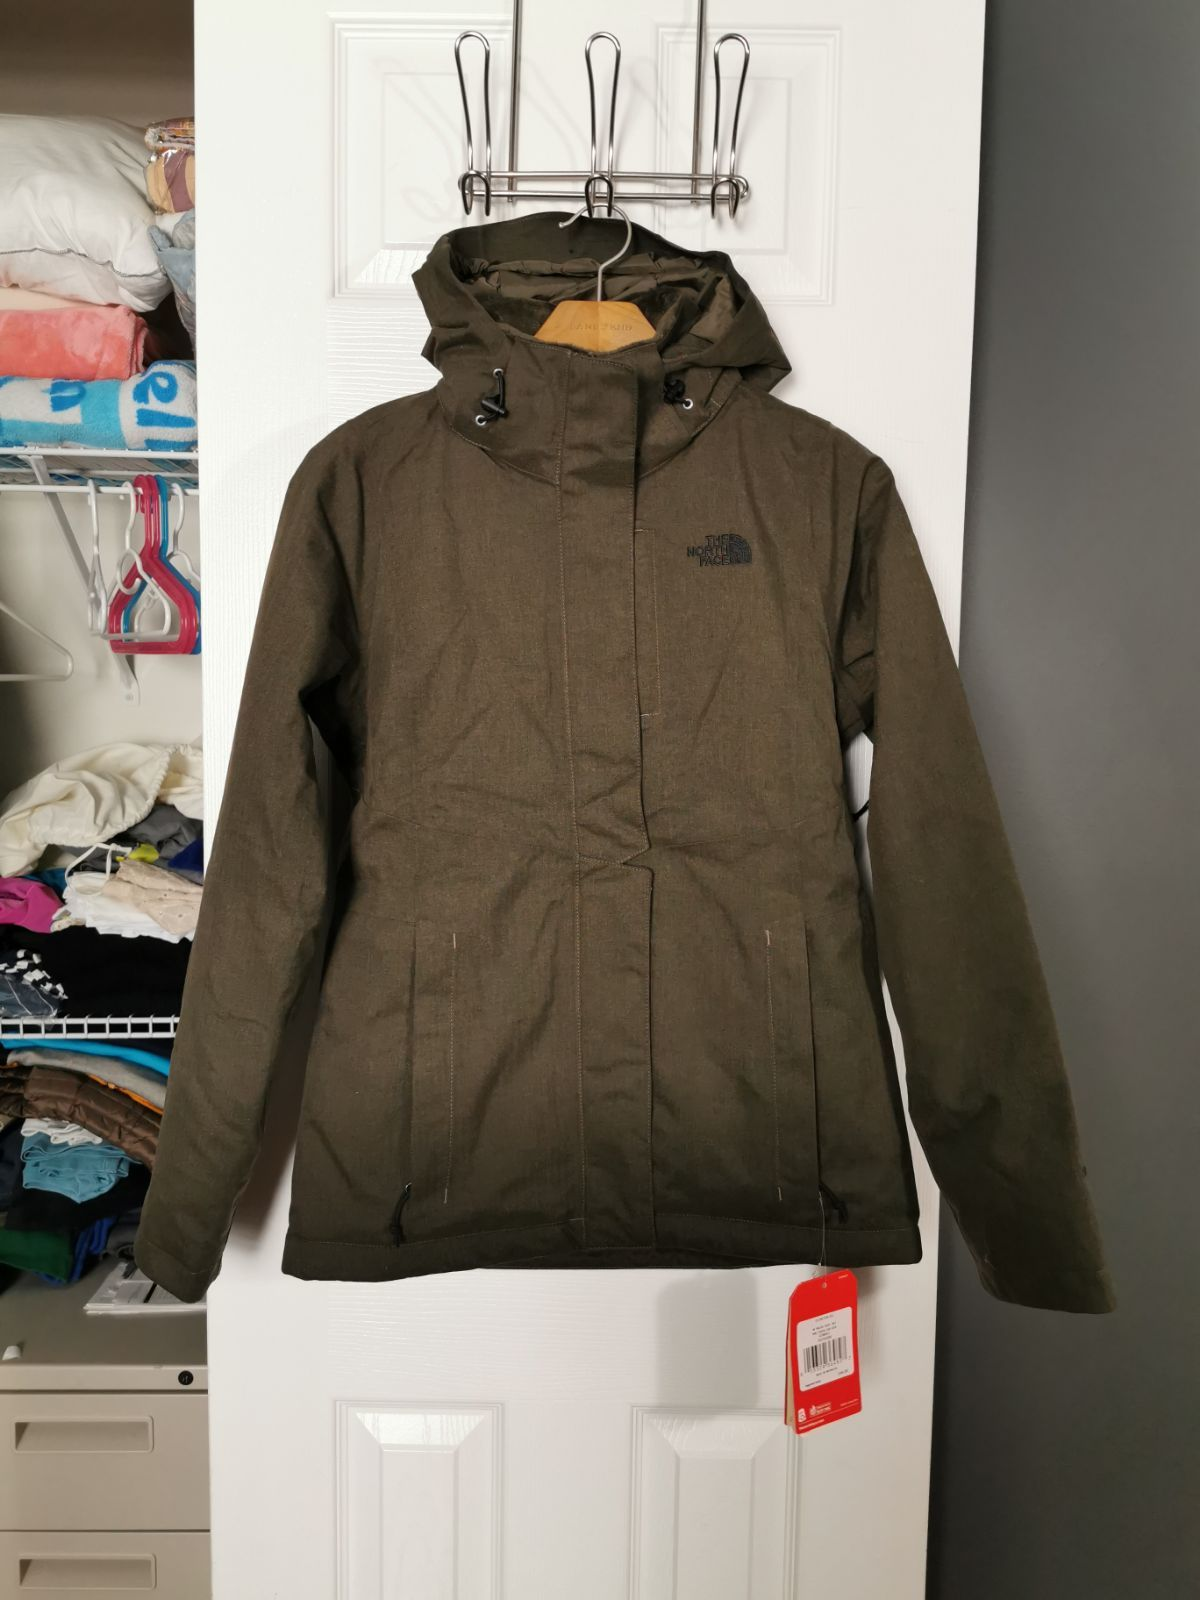 Brand New With Tags Super Warm And Thick Winter Jacket Outside Is Waterproof And The Inside Is Lined In A S North Face Jacket Womens Jackets North Face Women [ 1600 x 1200 Pixel ]